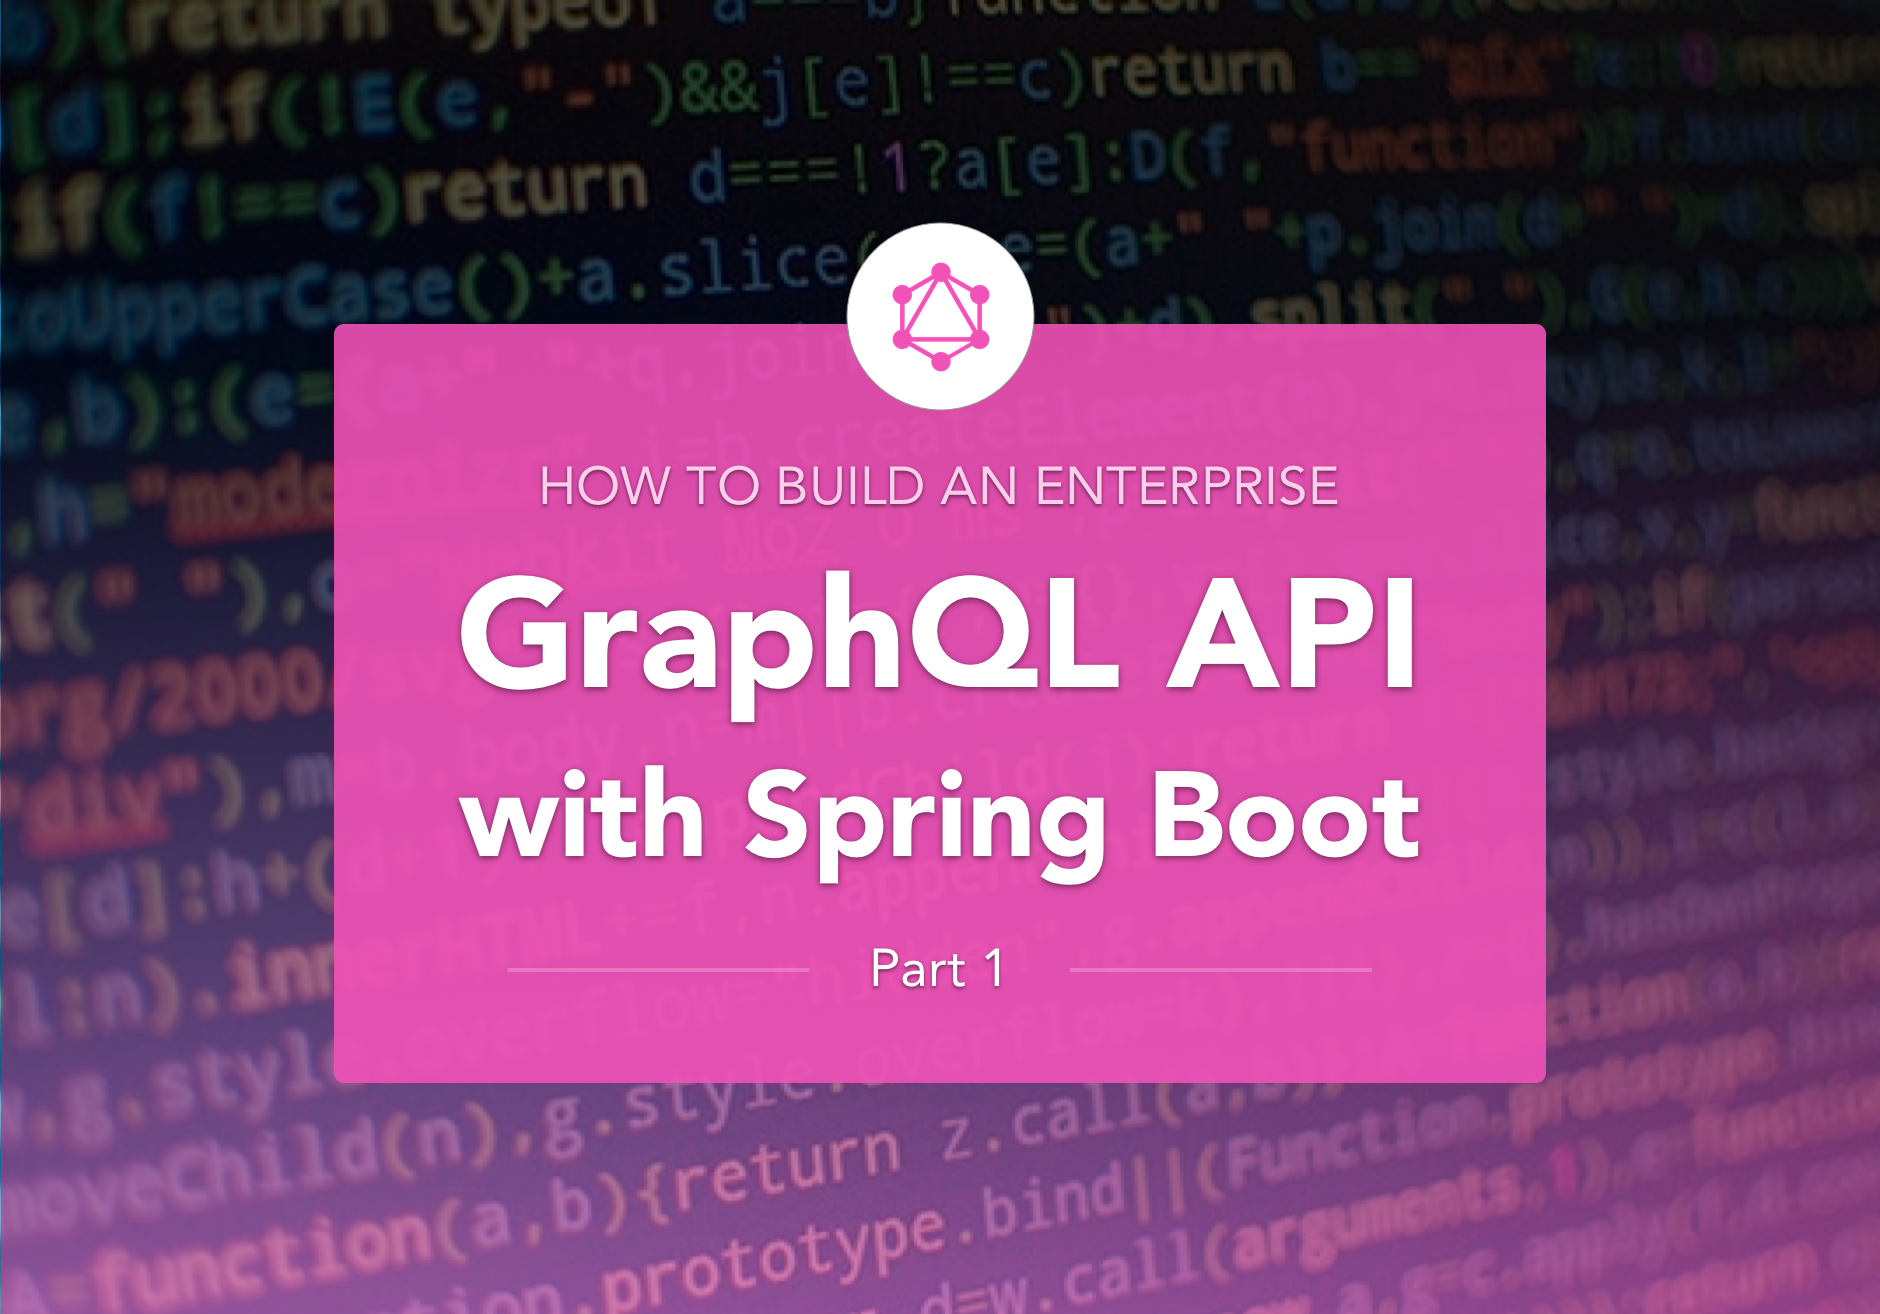 How to build a GraphQL API with Spring boot